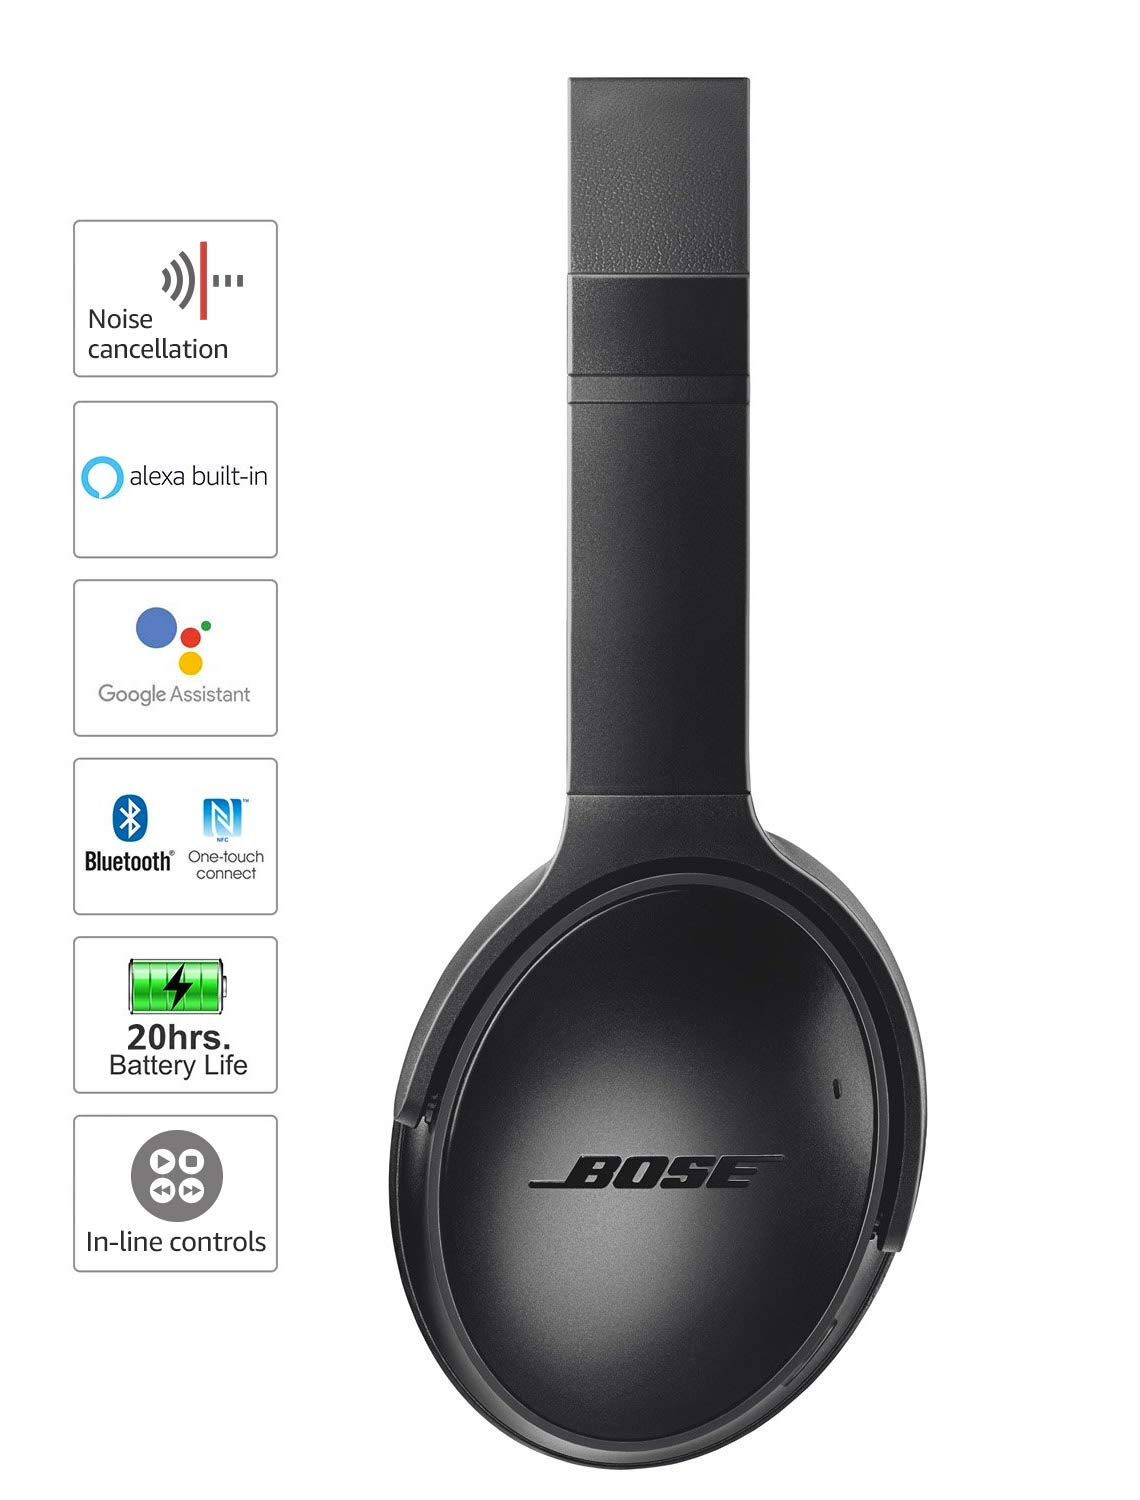 726df046a34 Amazon.com: Bose QuietComfort 35 II Wireless Bluetooth Headphones,  Noise-Cancelling, with Alexa voice control, enabled with Bose AR – Black:  Electronics